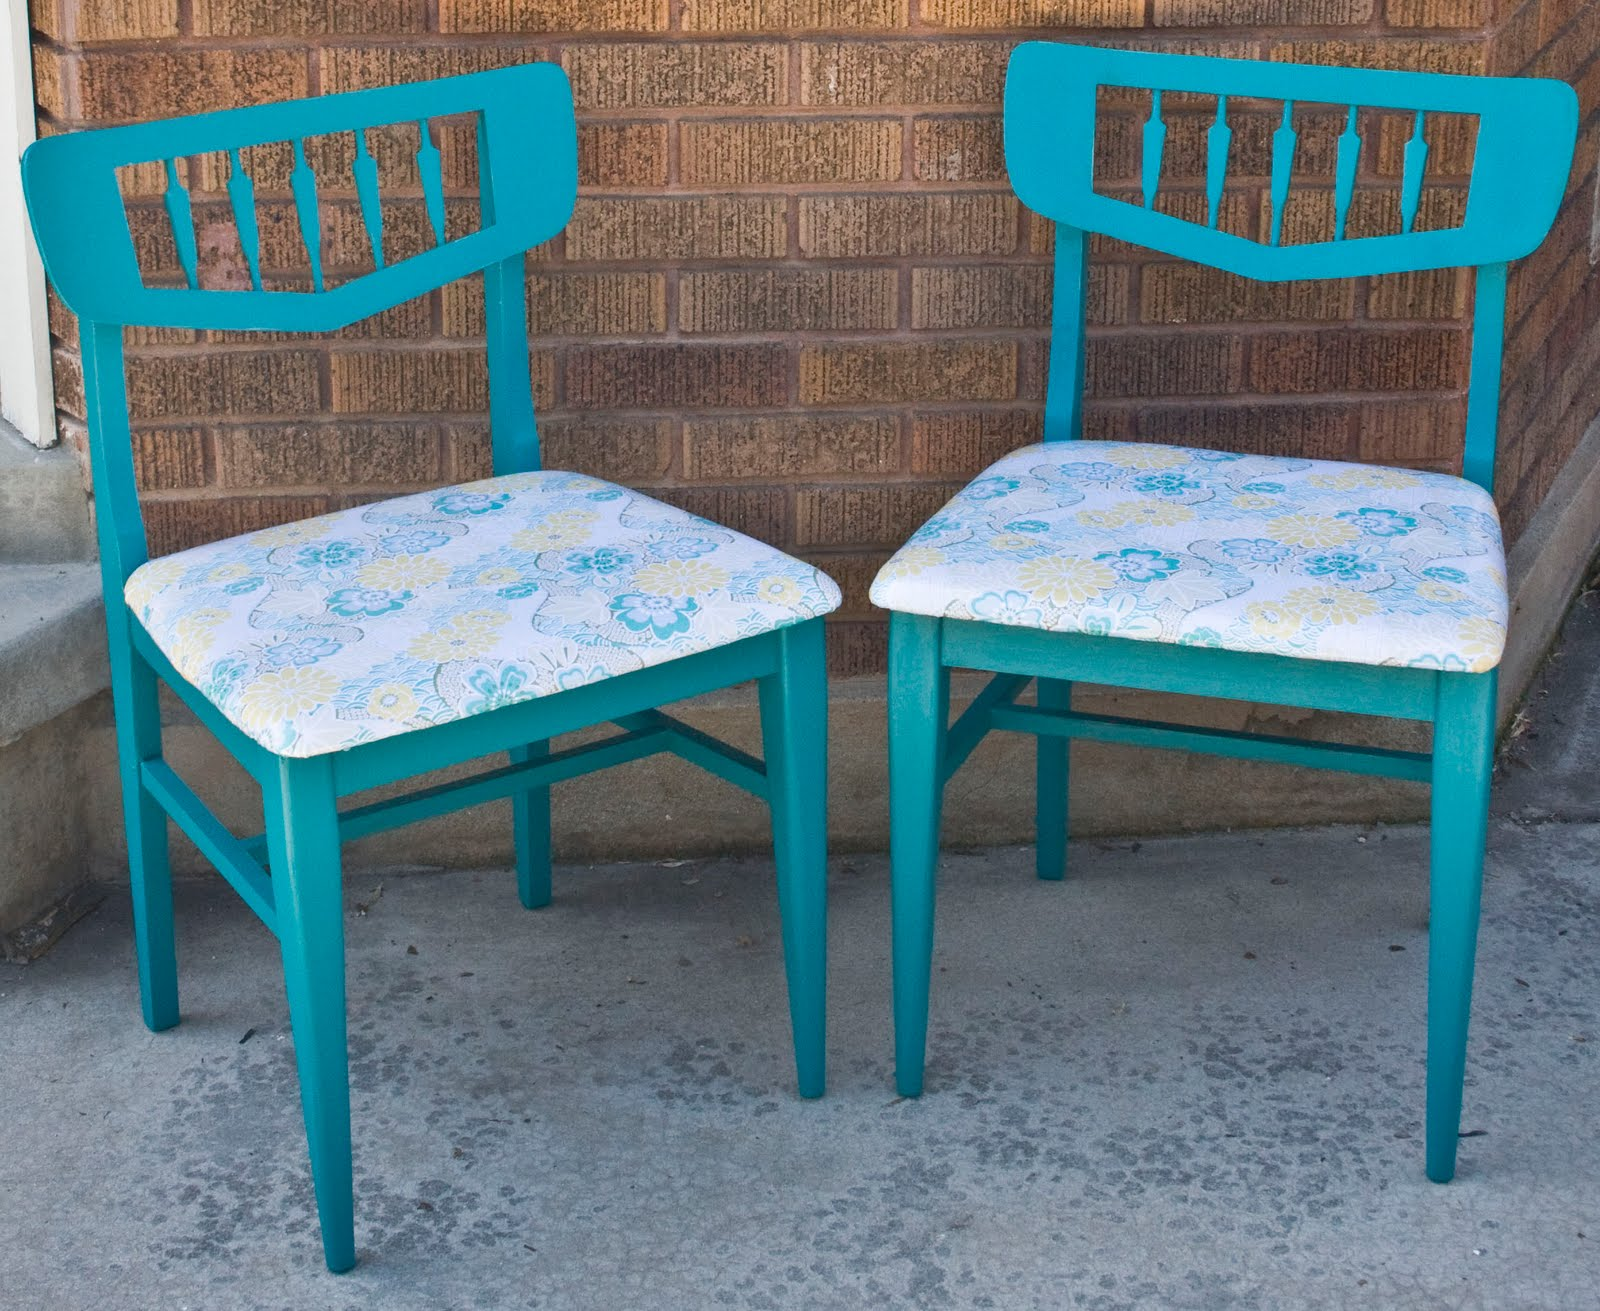 tell city chairs pattern 4548 carbon fiber chair modernly shabby chic furniture two retro turquoise